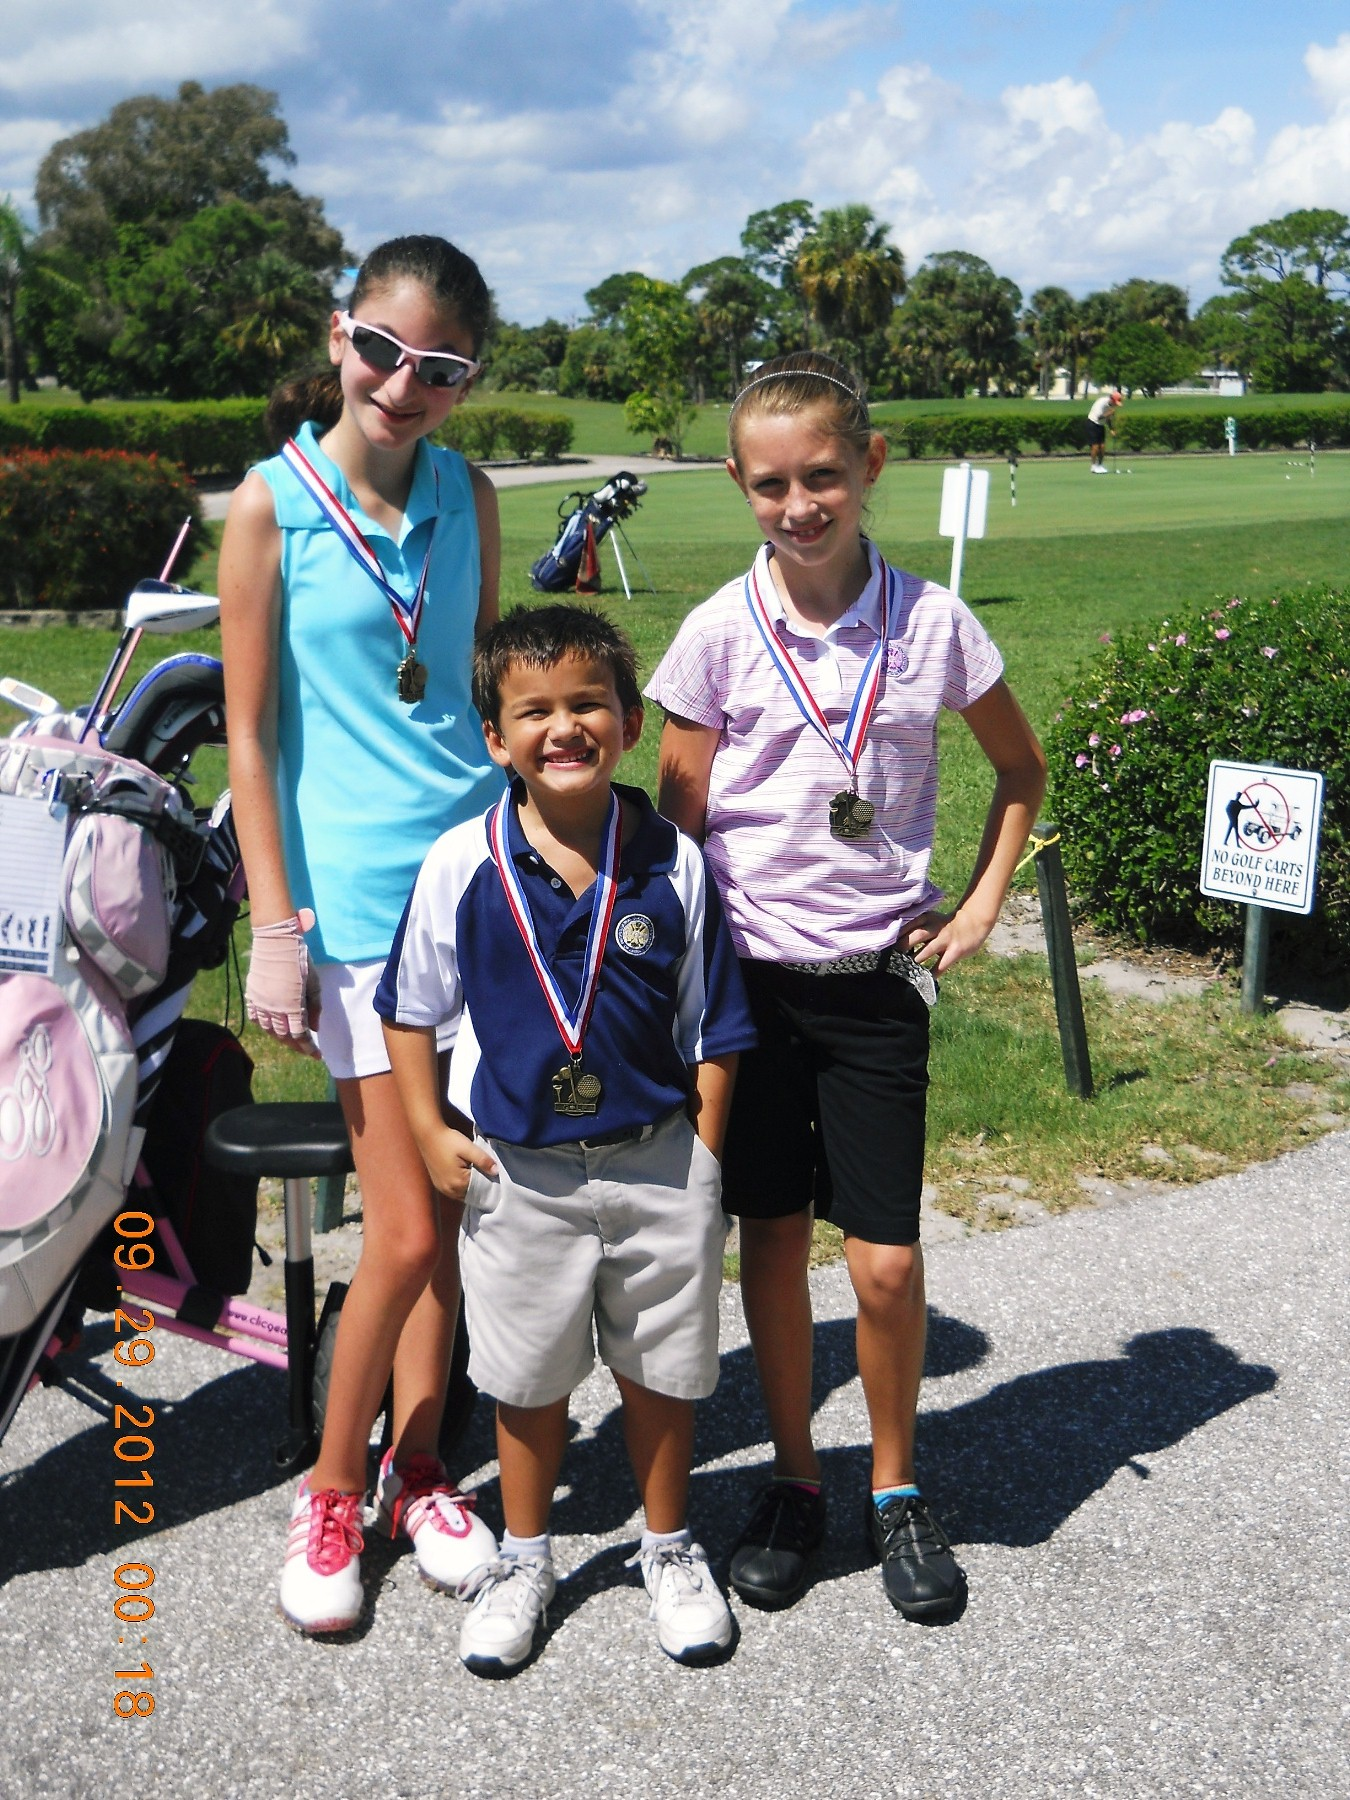 Local school golf program students excel at tournament